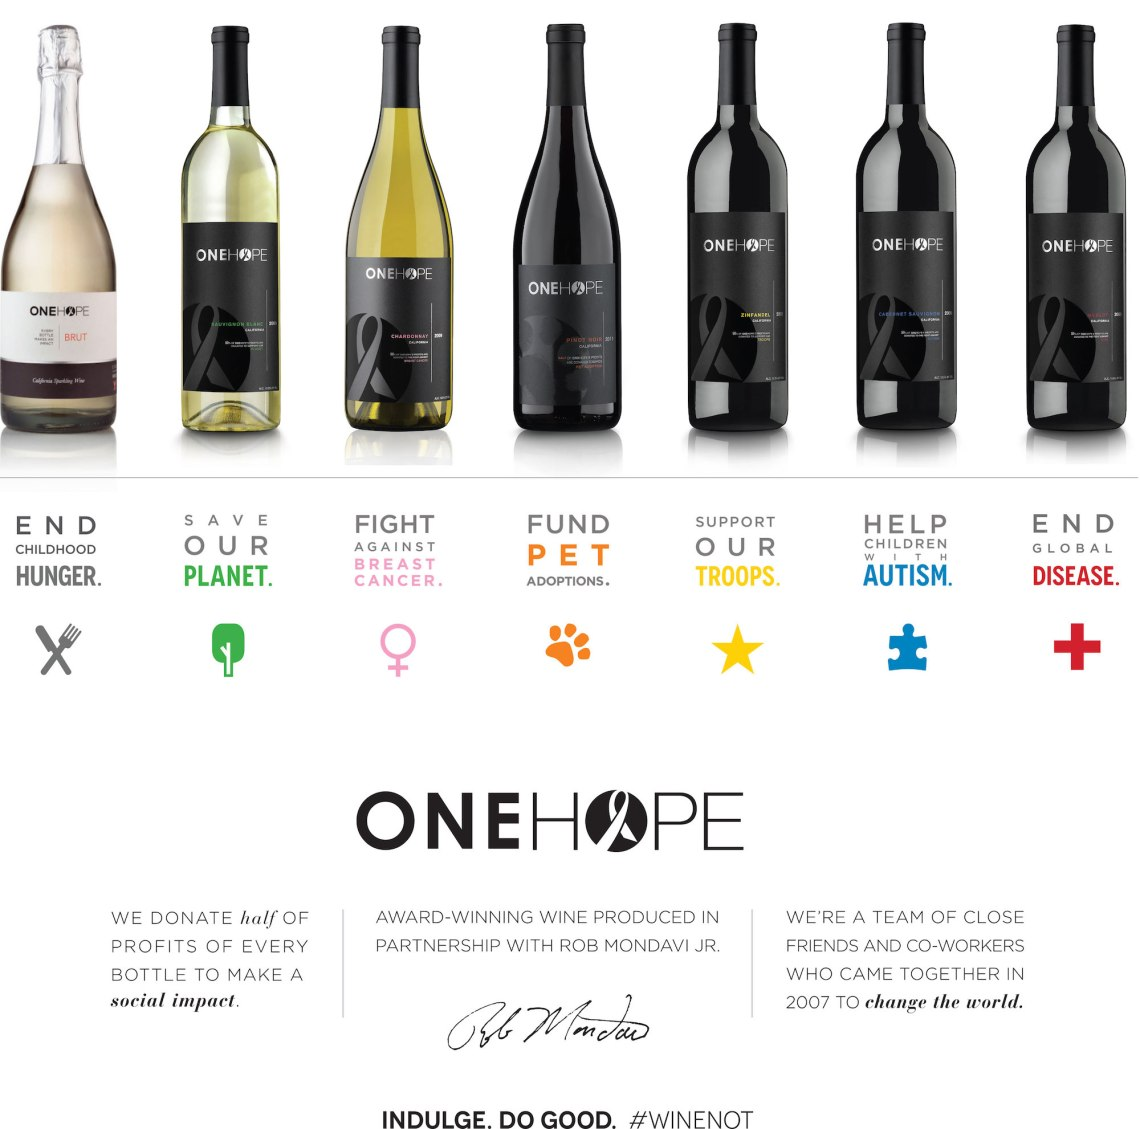 One Hope Wine - Earth Day Socially Responsible Gifts